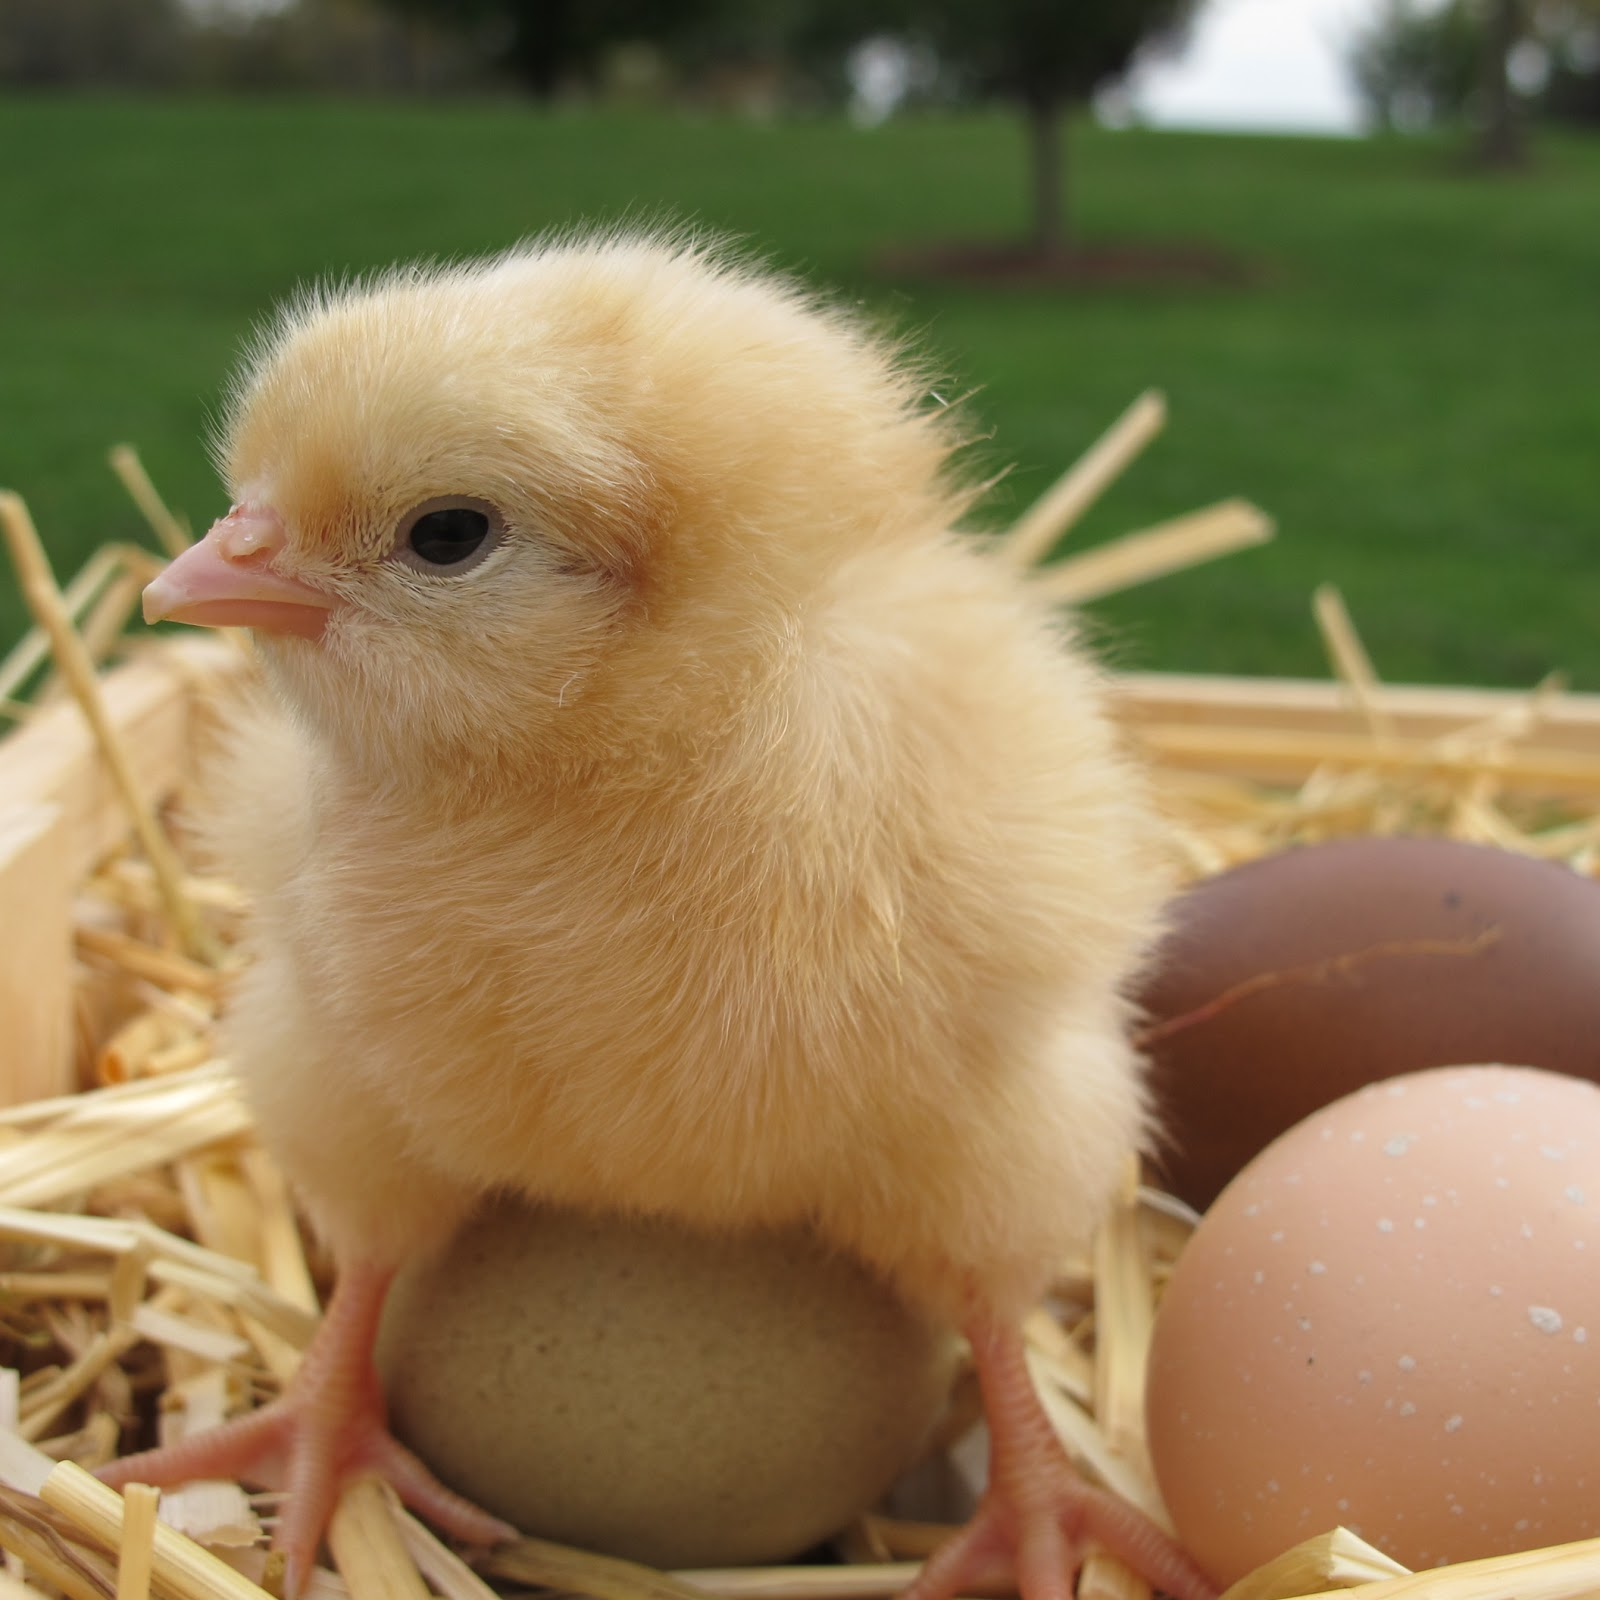 My Favorite Photos of Baby Chicks | The Chicken Chick®